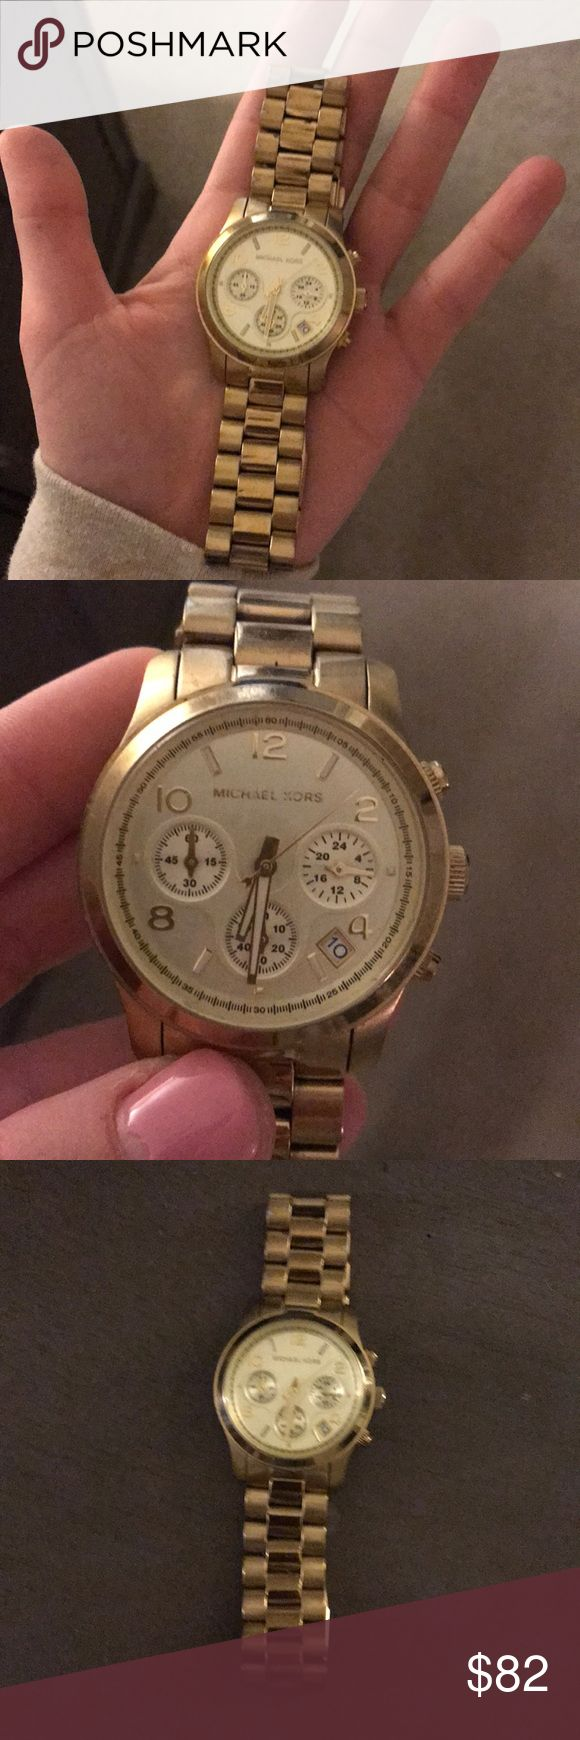 Michael khors gold watch Michael khors gold watch ! Classy outfit staple ! Gently used with some normal wear. Only needs new battery! KORS Michael Kors Accessories Watches